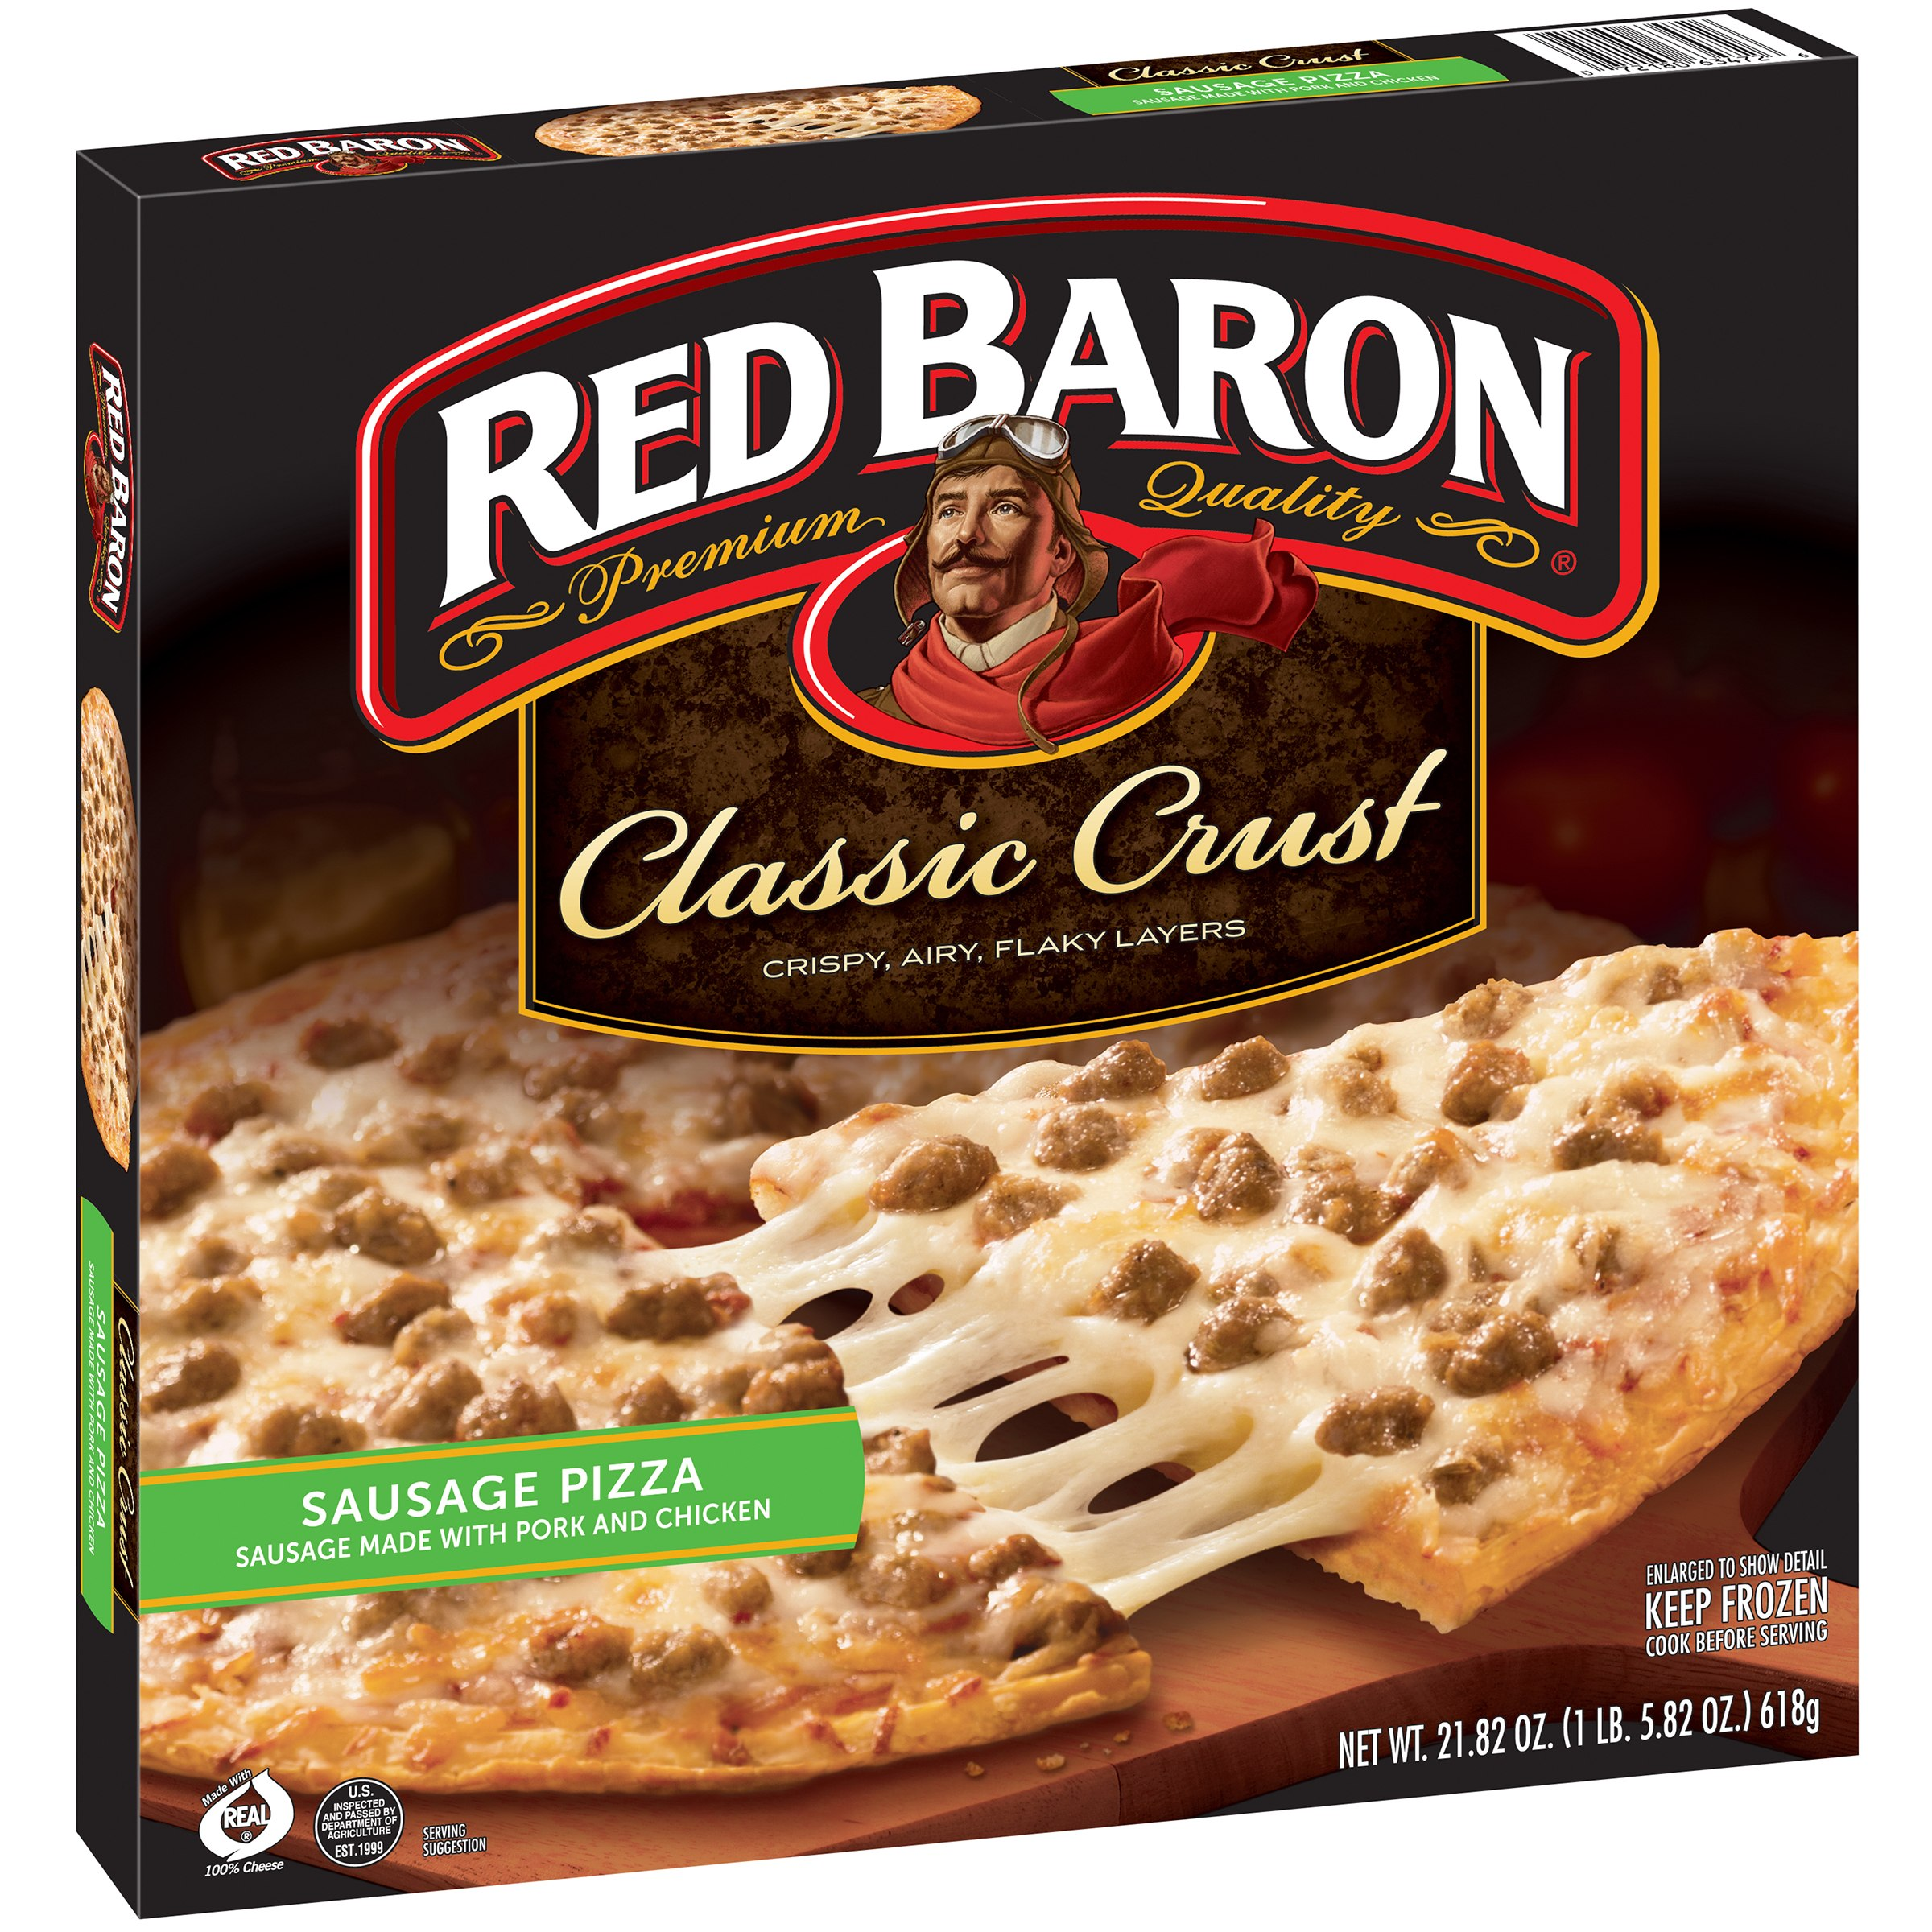 Red Baron® Classic Crust Sausage Pizza 21.82 oz. Box